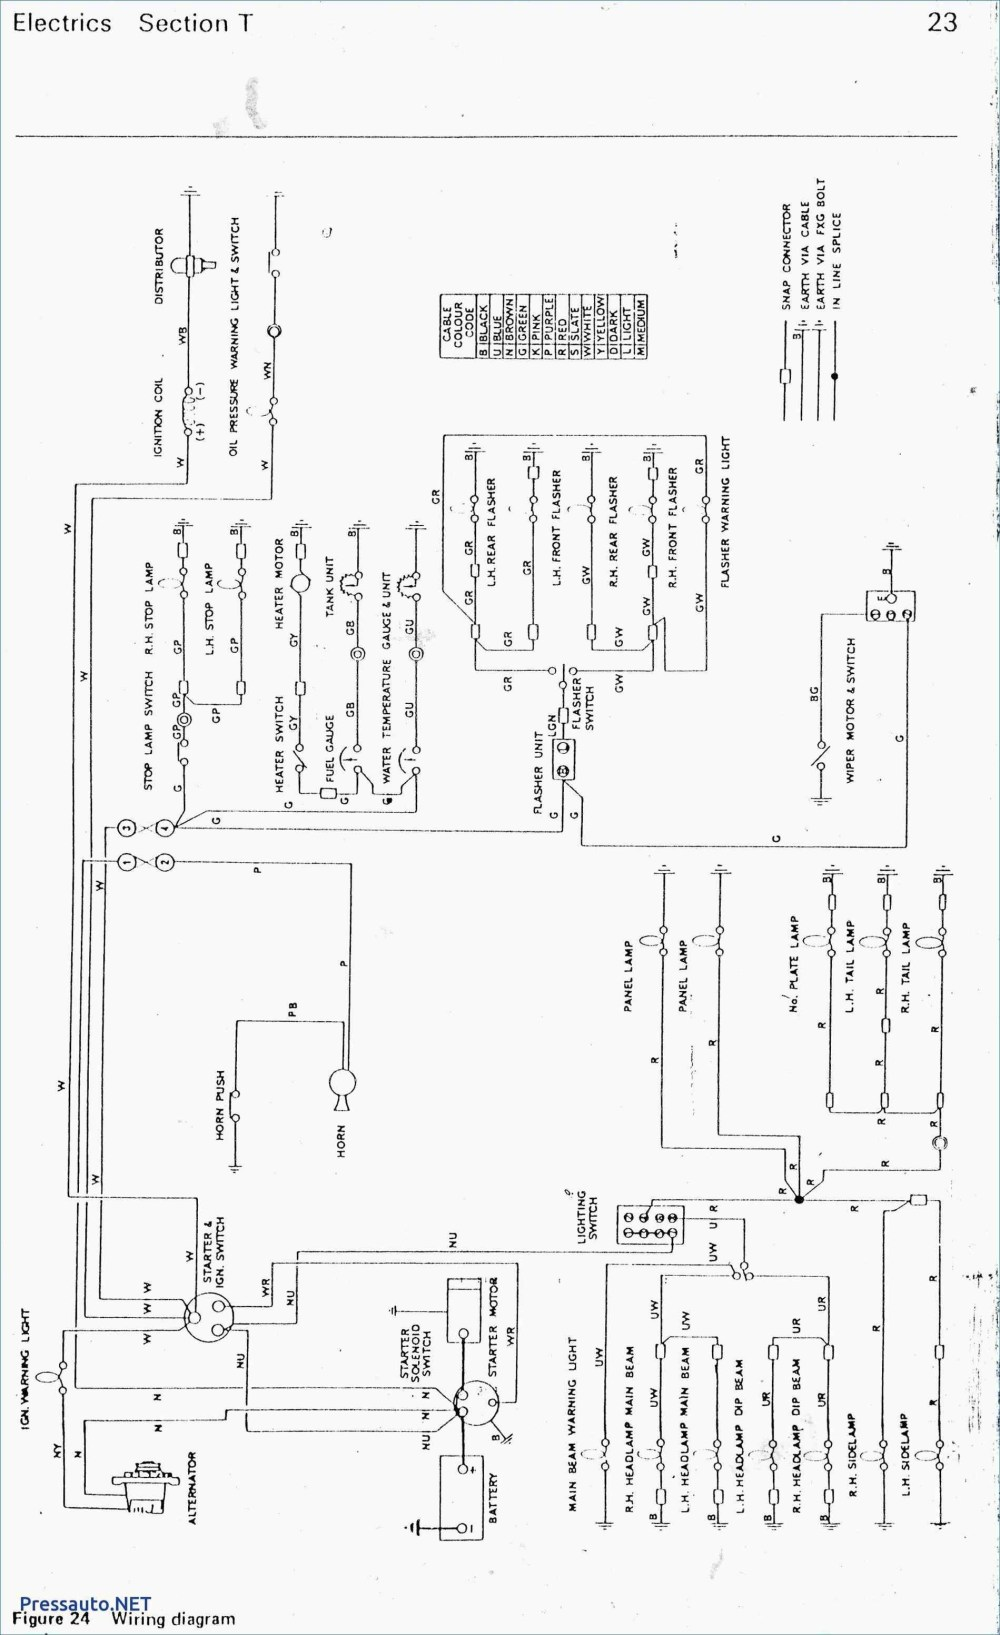 medium resolution of wiring yale diagram fork lift gc050rdnuae083 wiring diagram